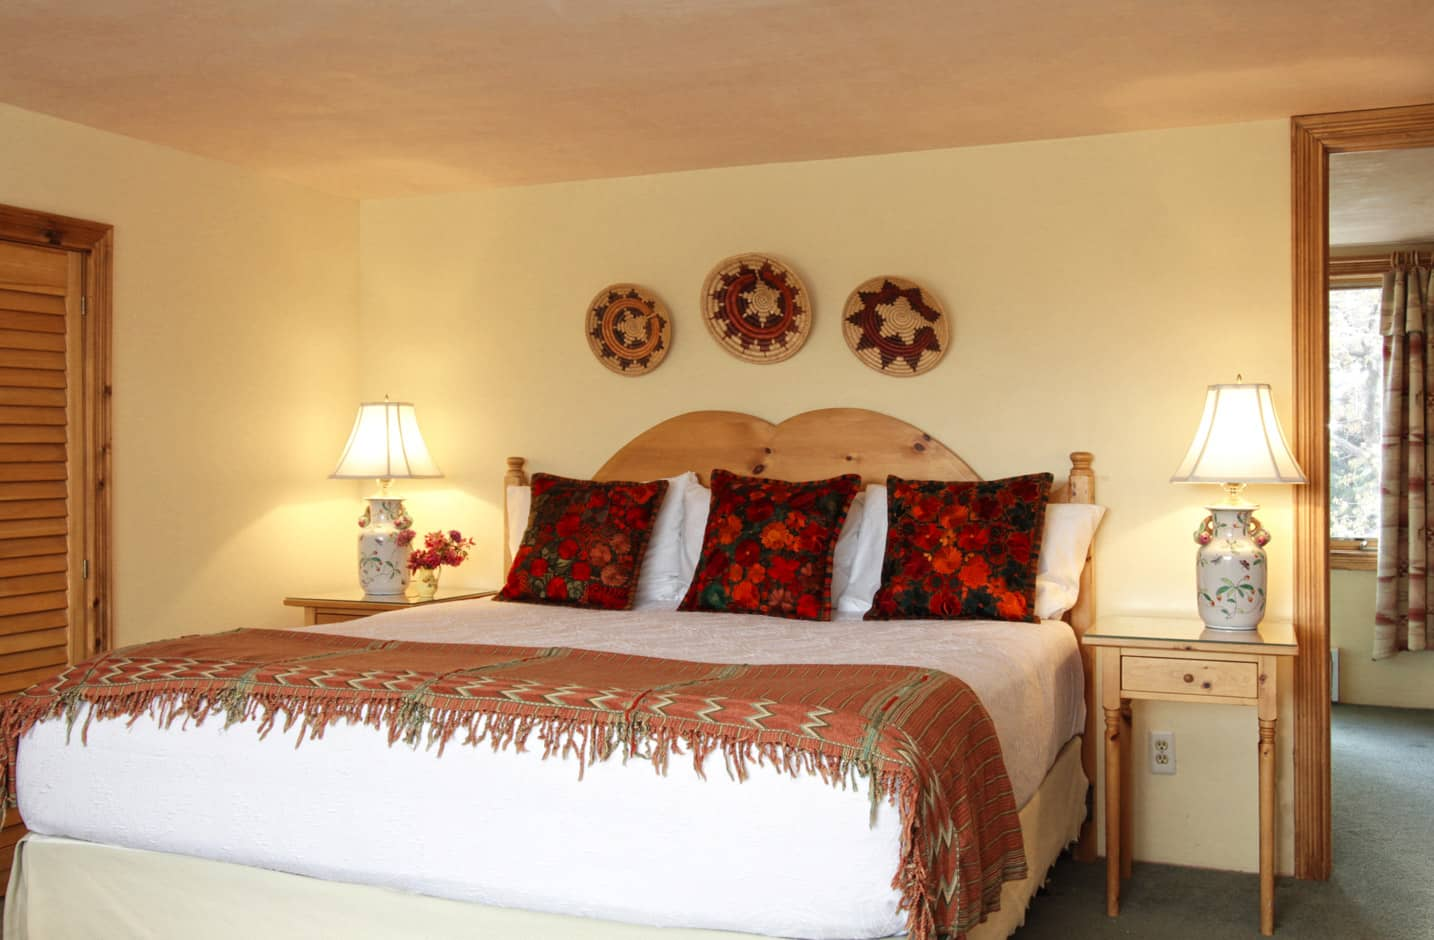 A spacious room with a king size bed